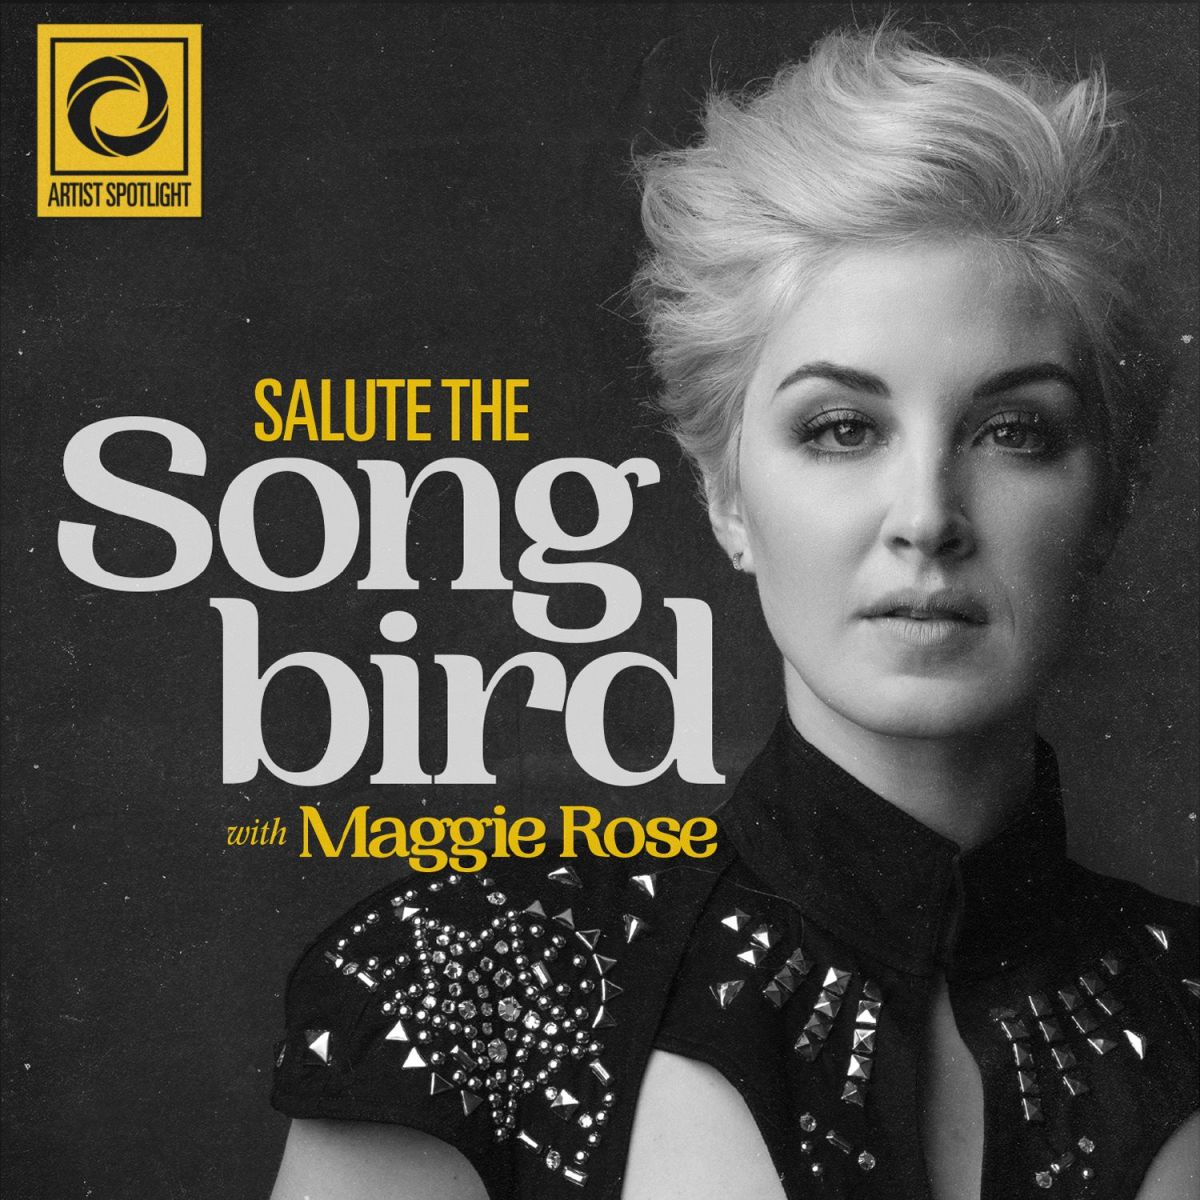 A promotional image for Salute the Songbird.